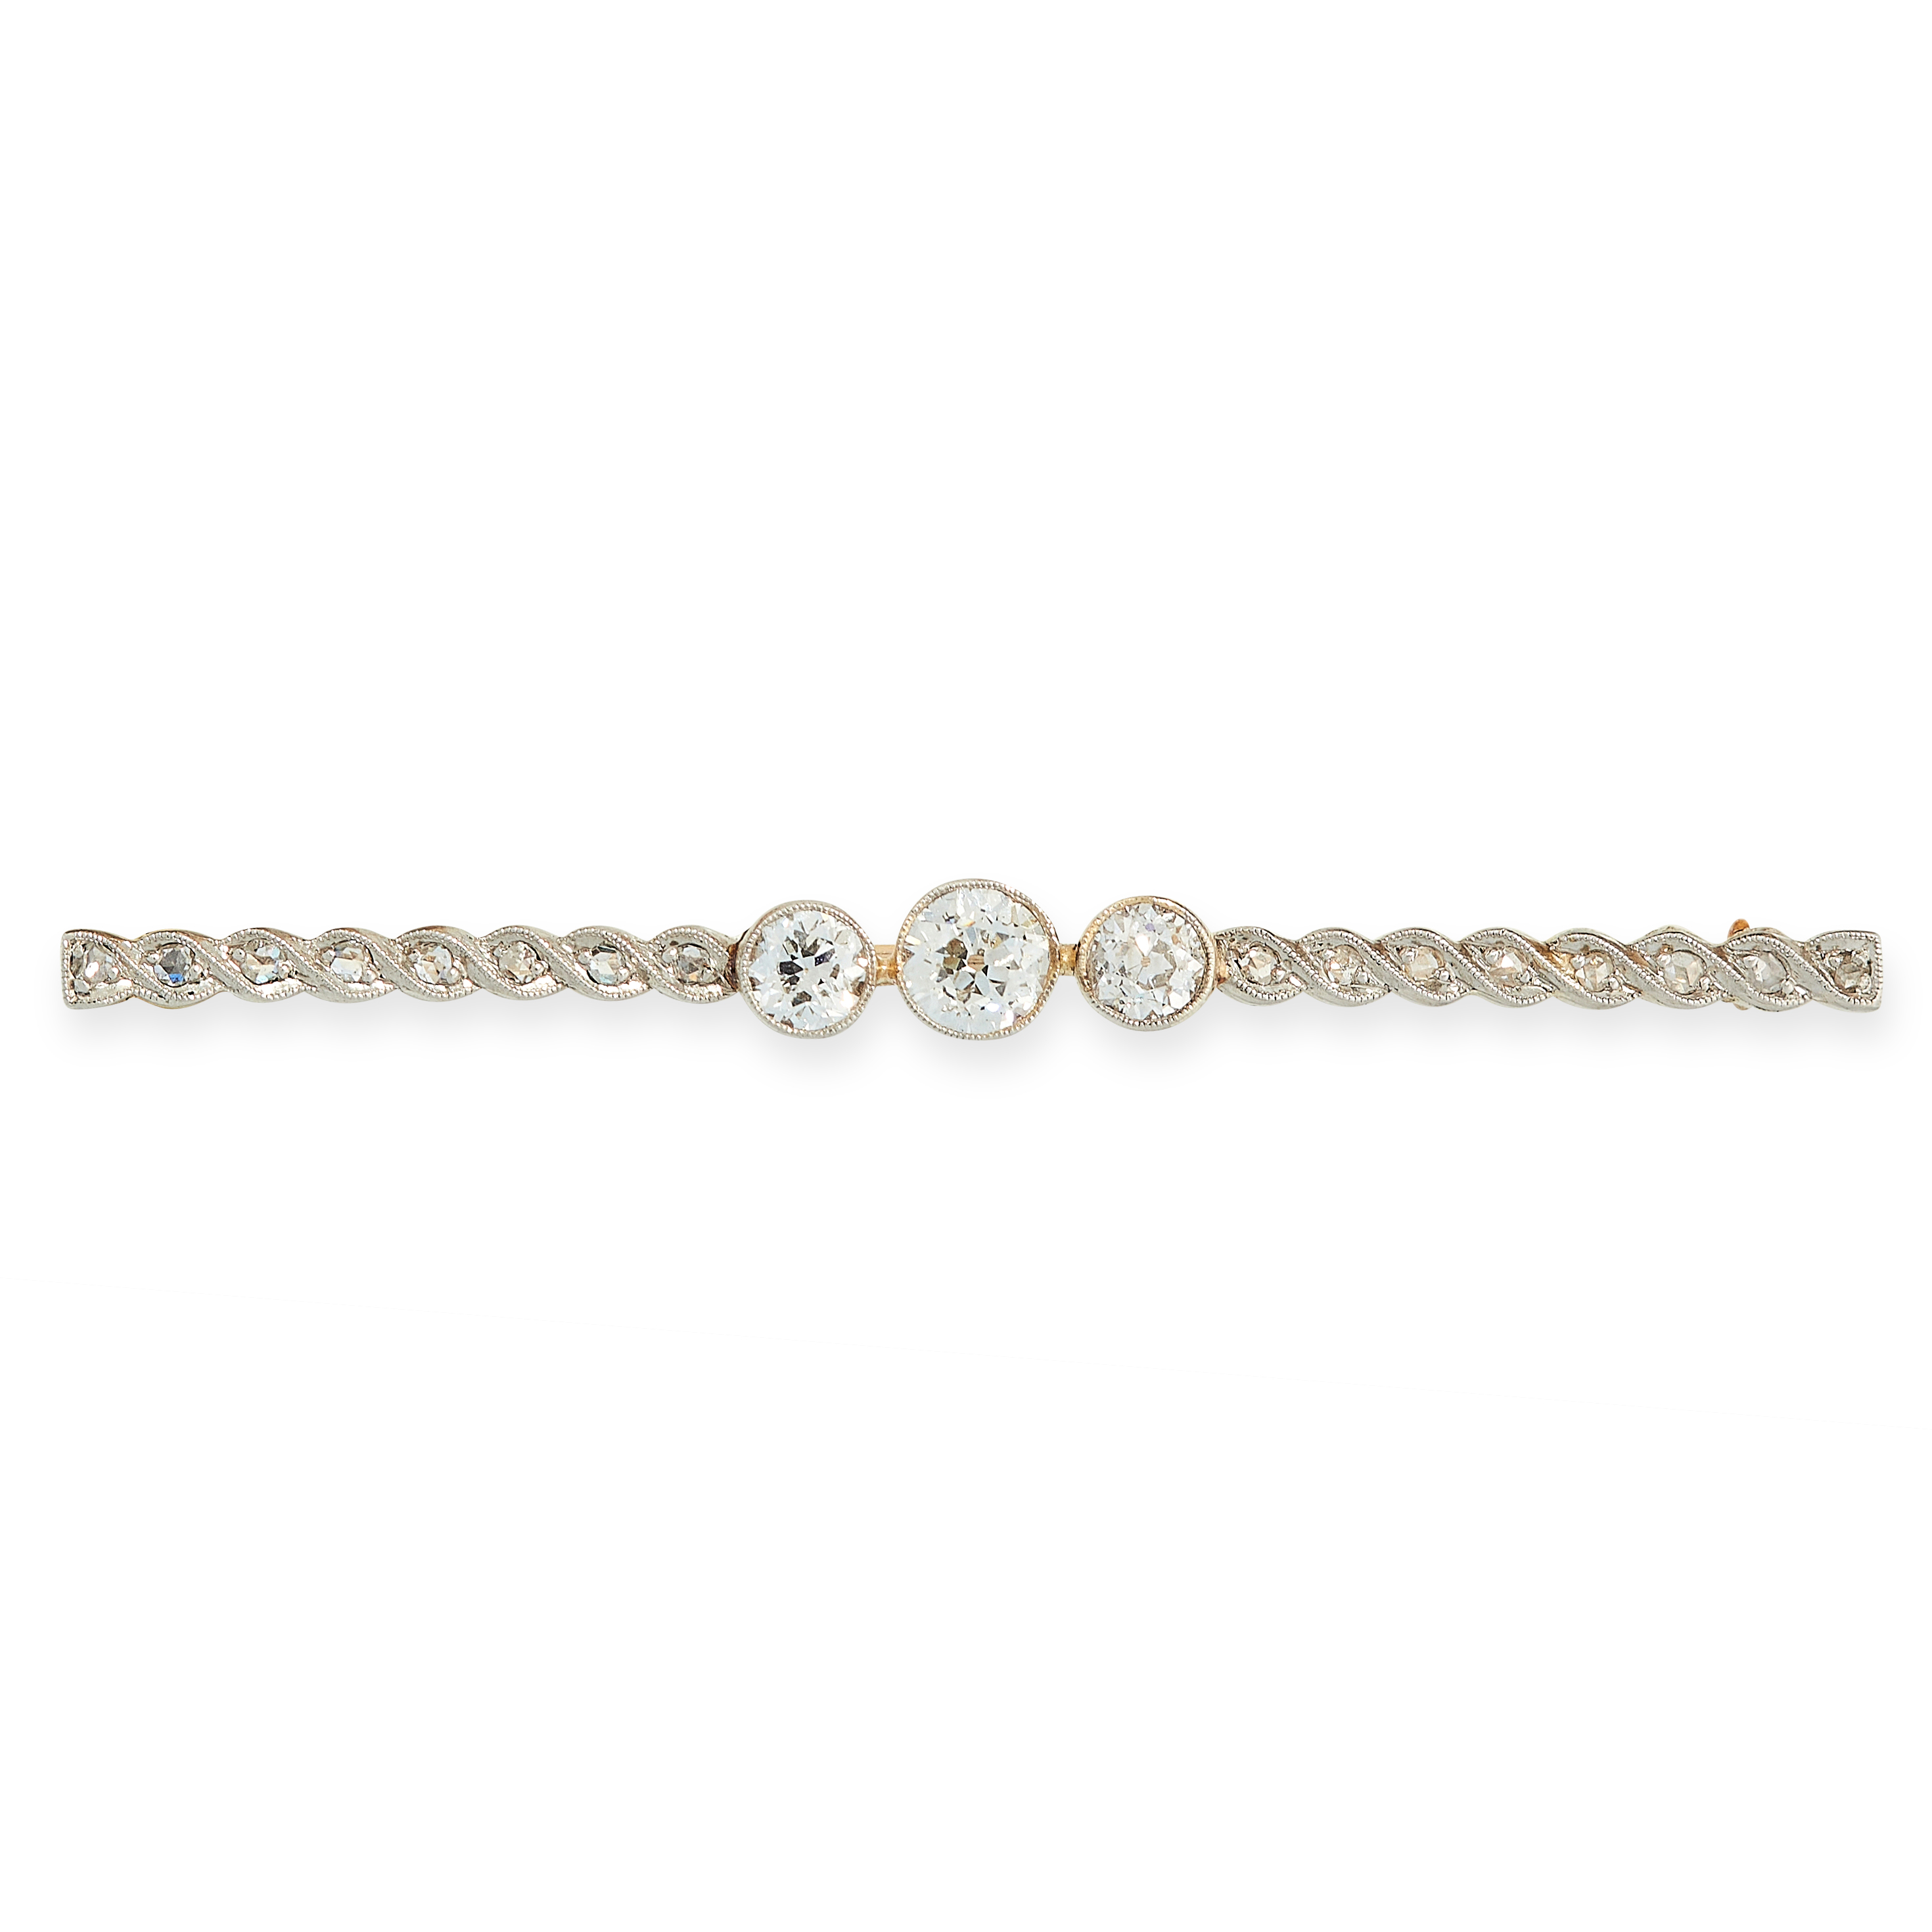 ANTIQUE DIAMOND BAR BROOCH set with three central old cut diamonds, carats between two rows of